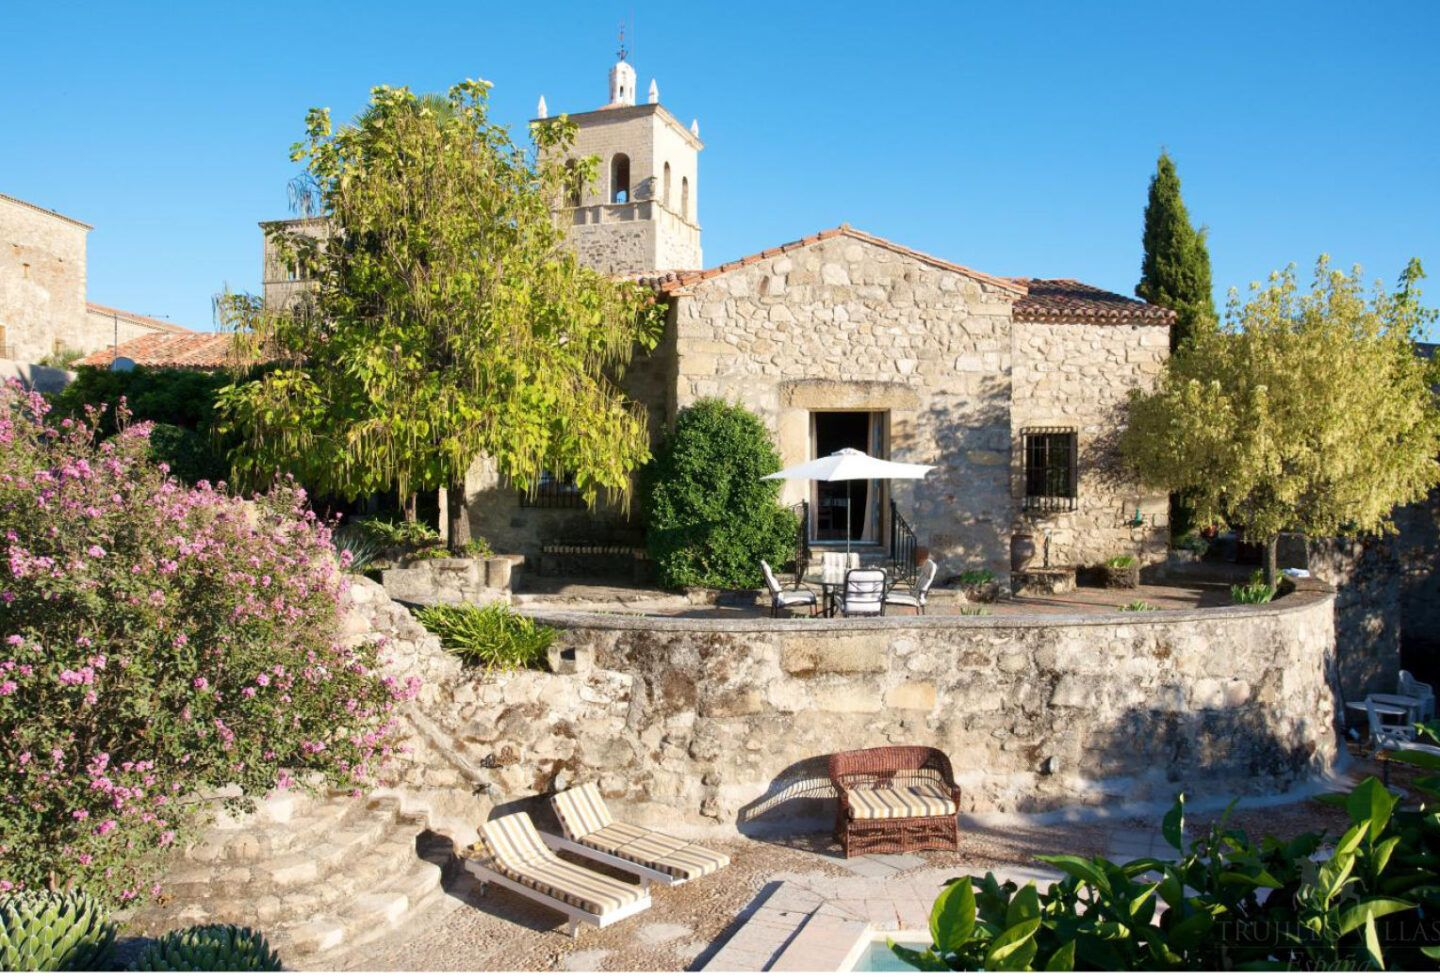 Ten of the best villas in Spain from The Times